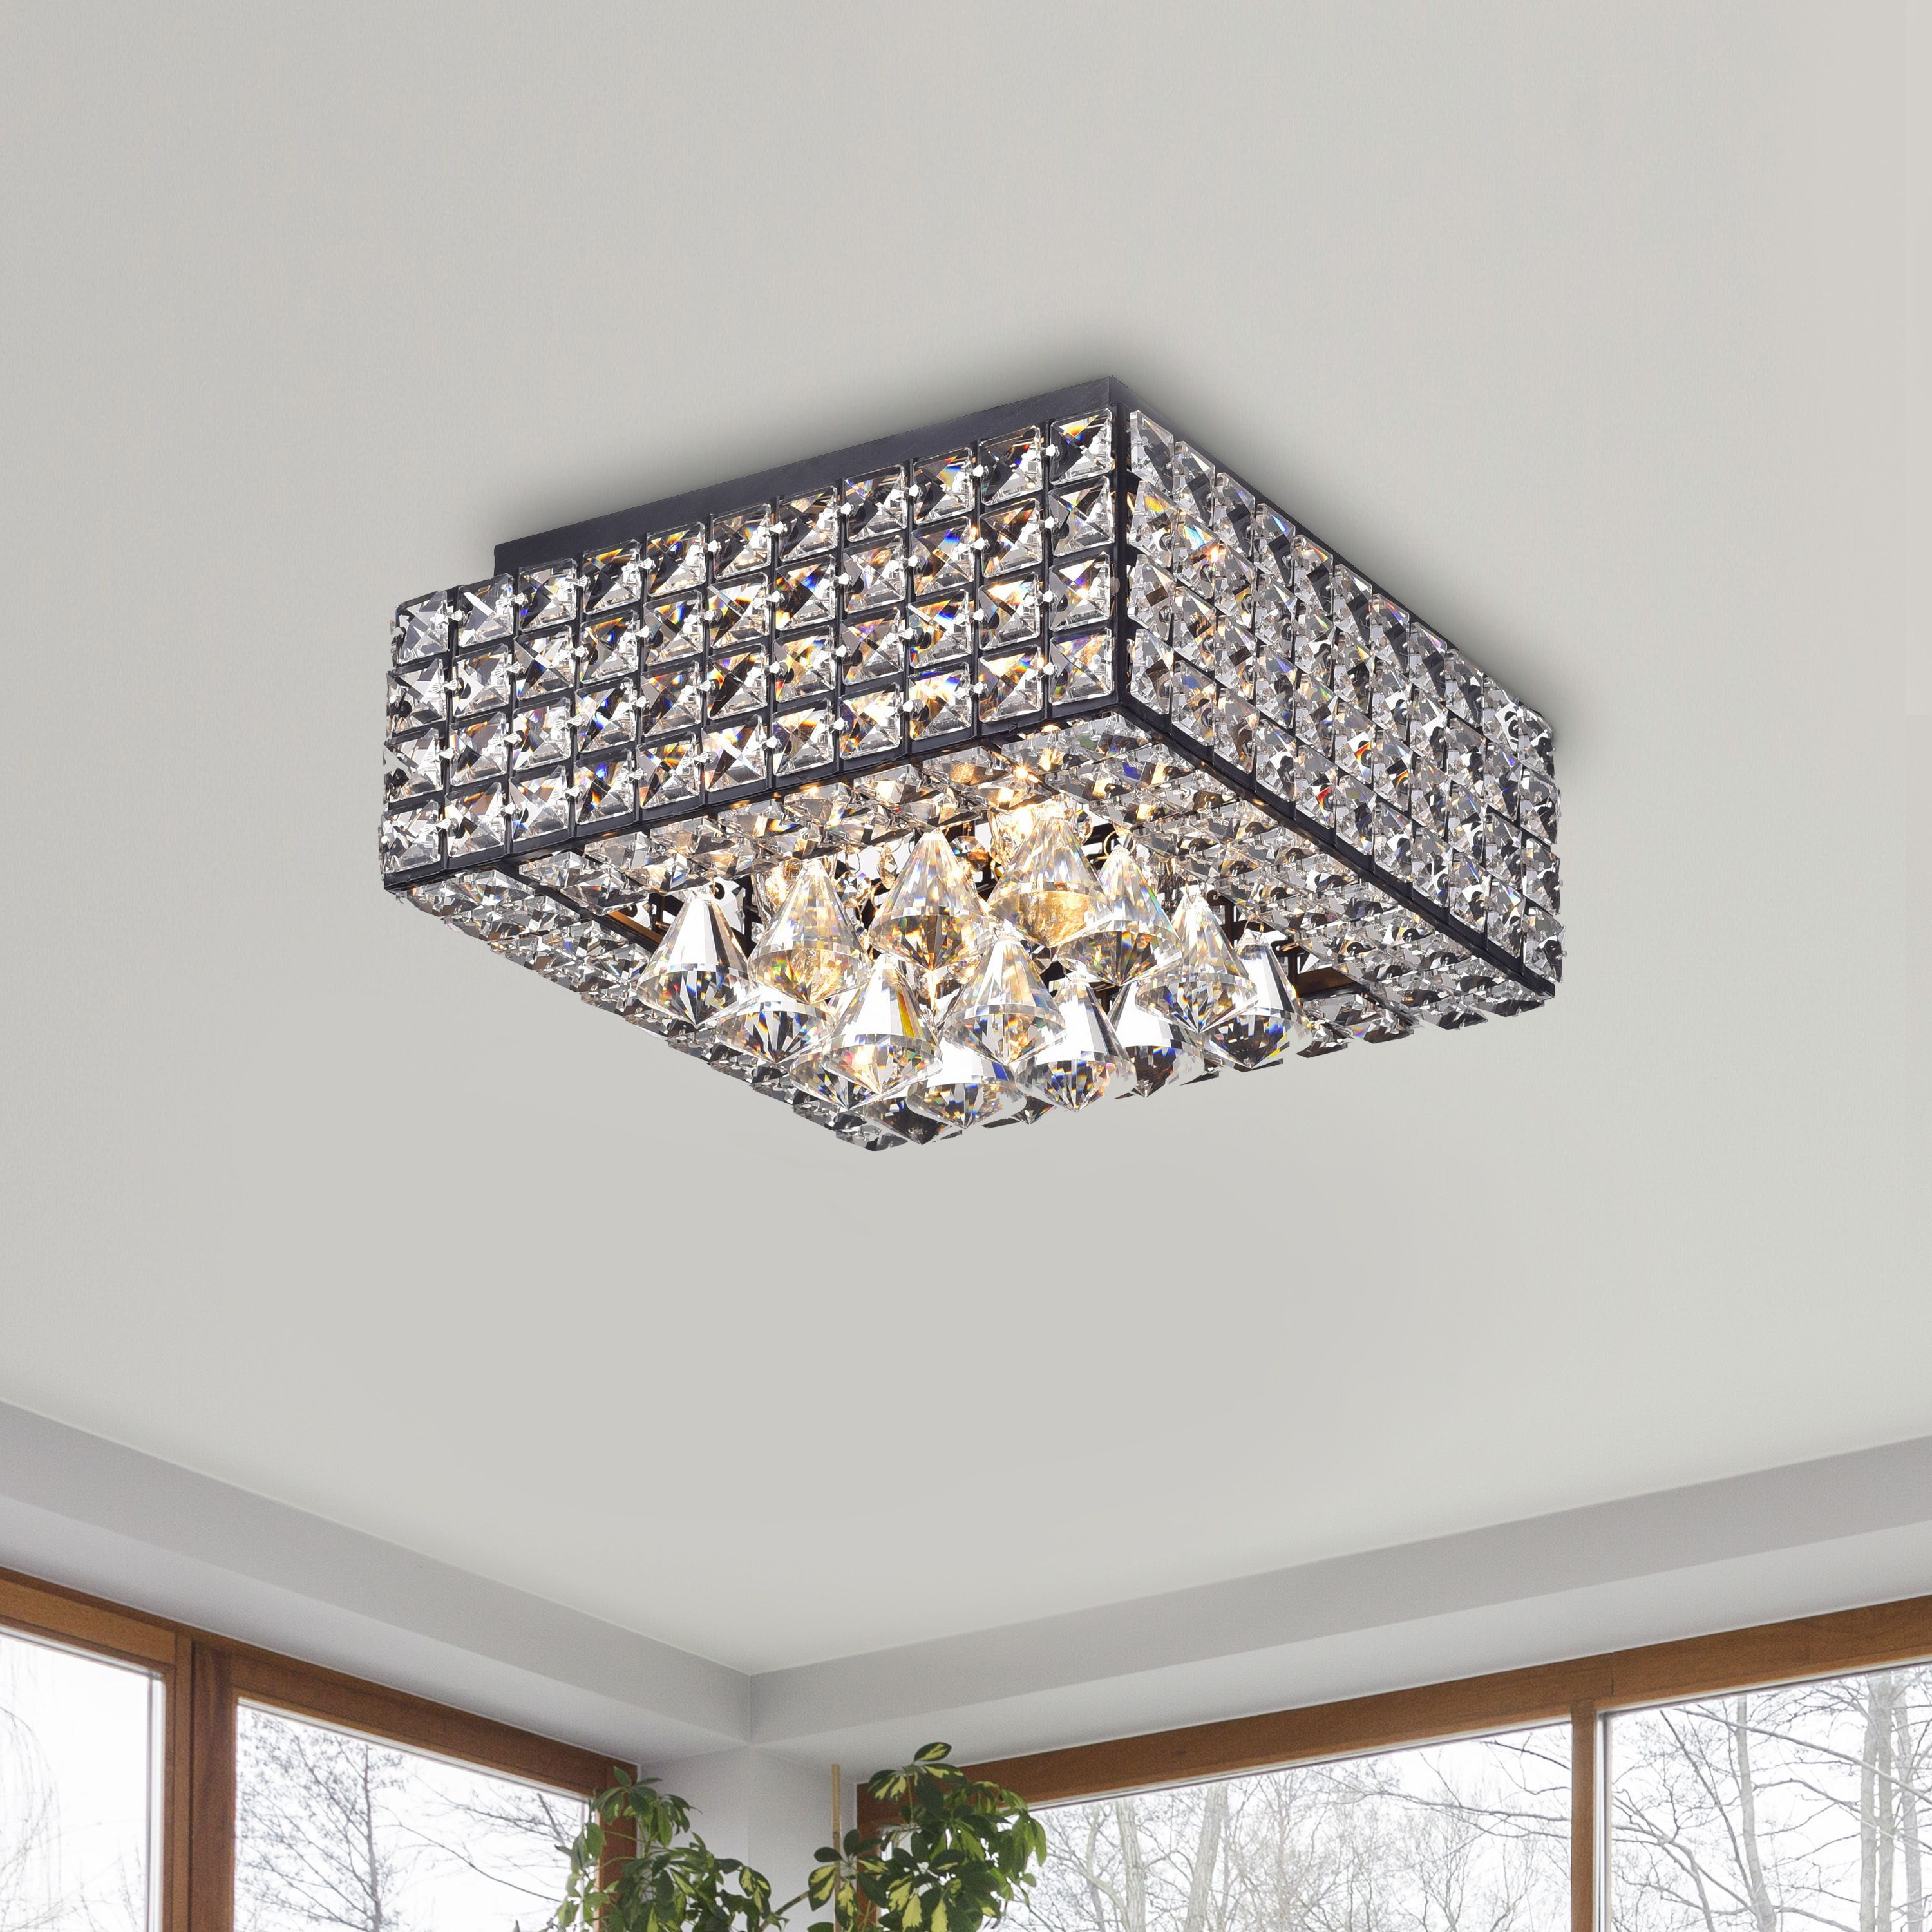 Pin By Awsaass On الصور In 2021 Flush Mount Chandelier Ceiling Lights Flush Mount Ceiling Lights